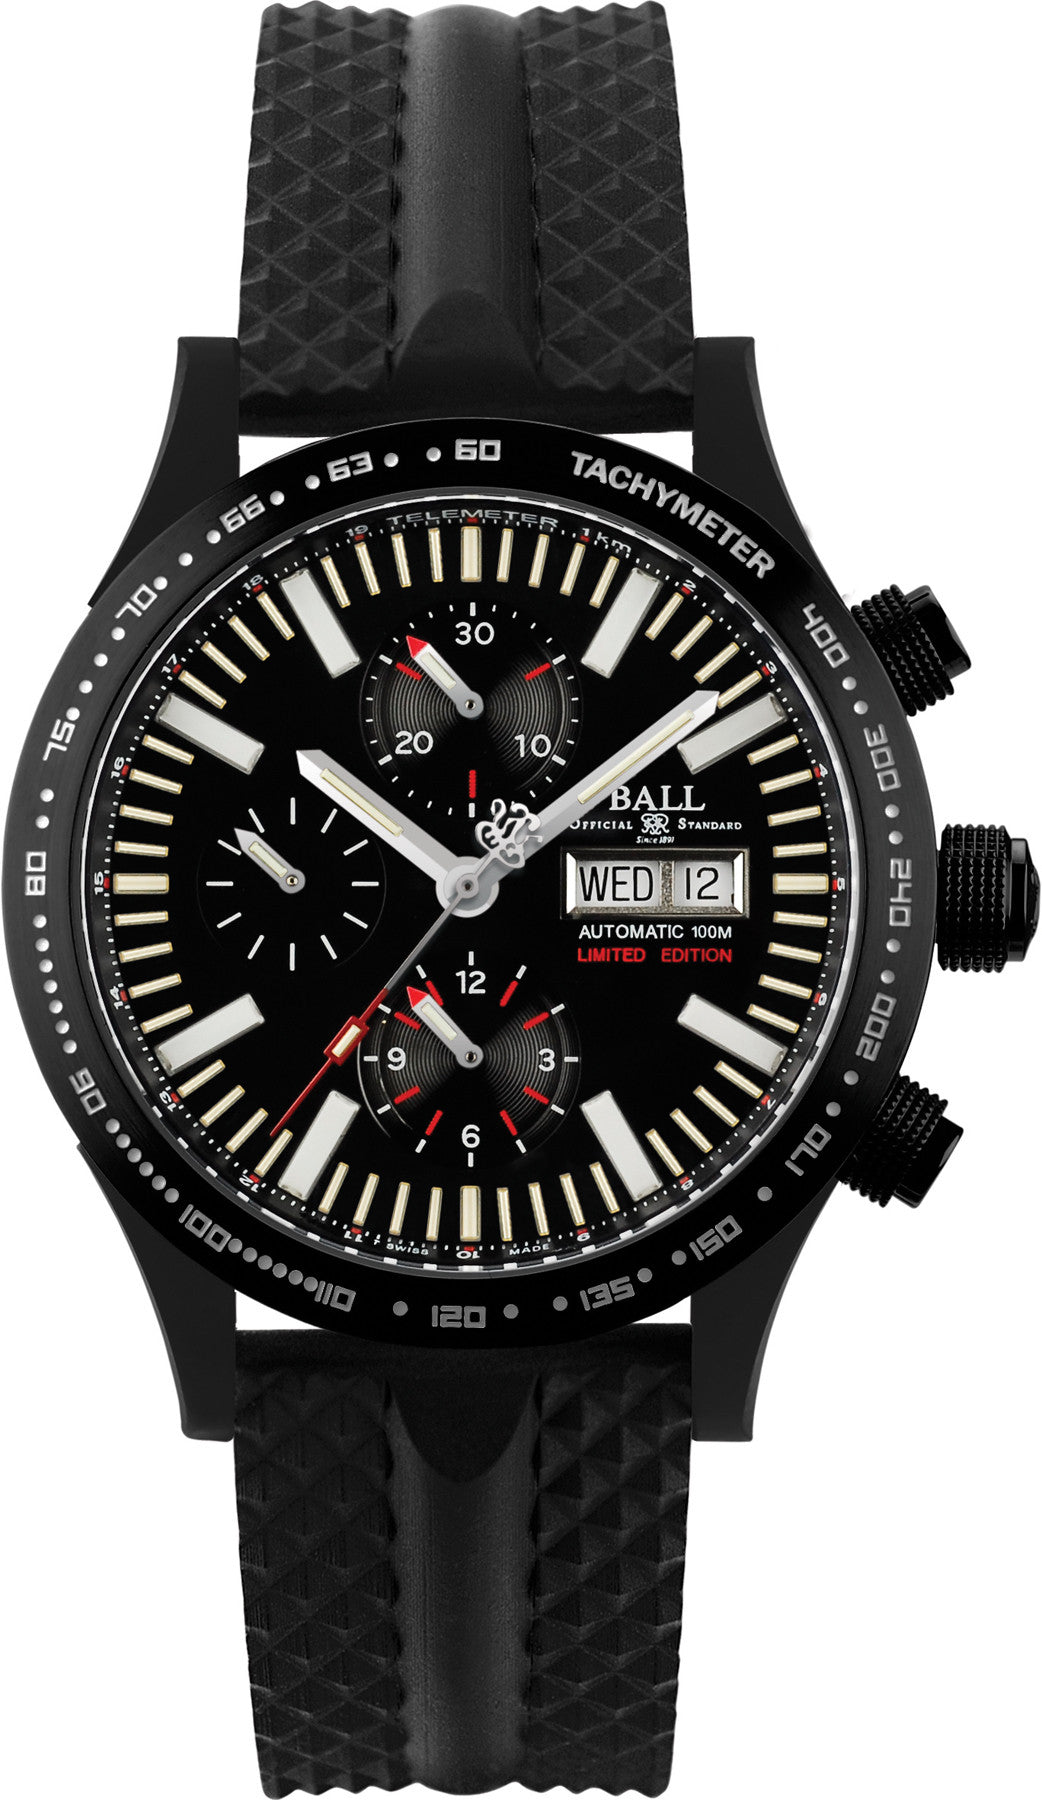 Ball Watch Company Fireman Storm DLC Glow